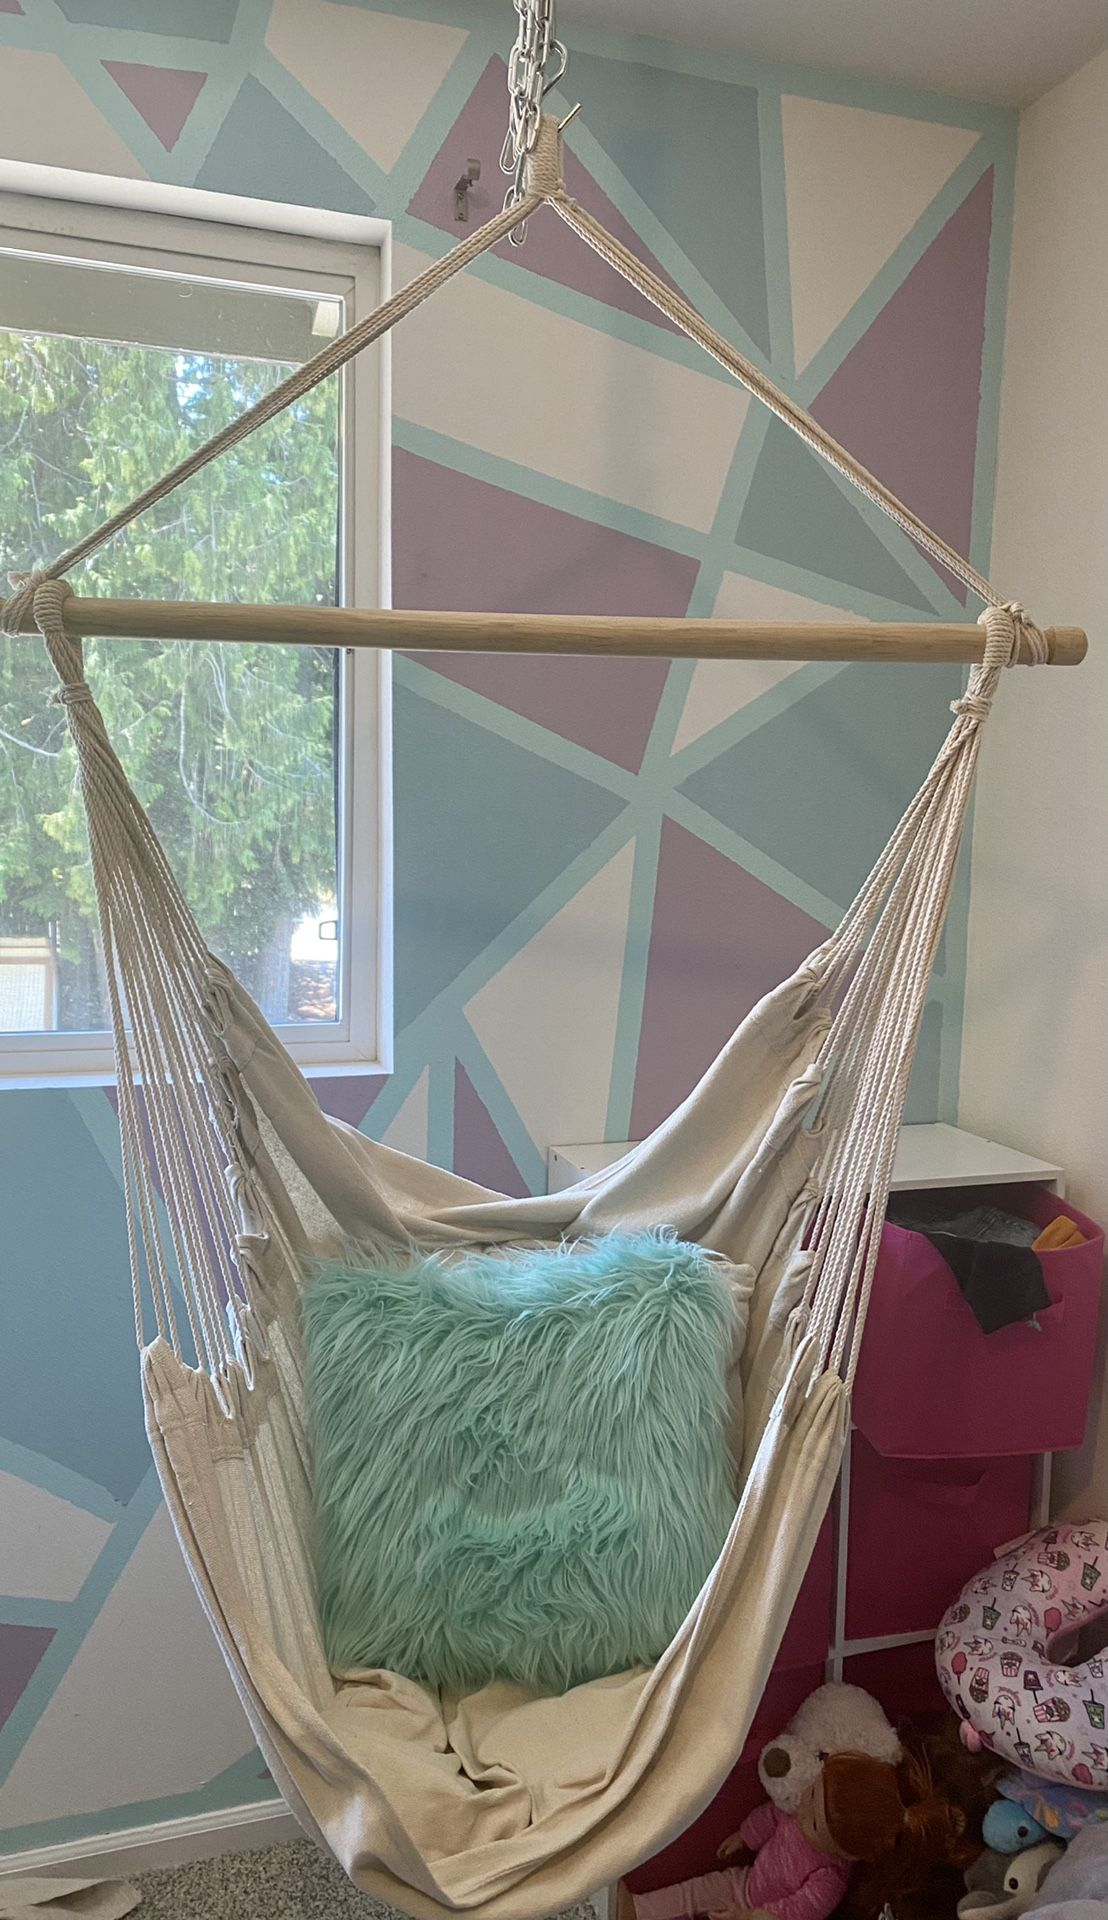 Hanging Chair with Hardware